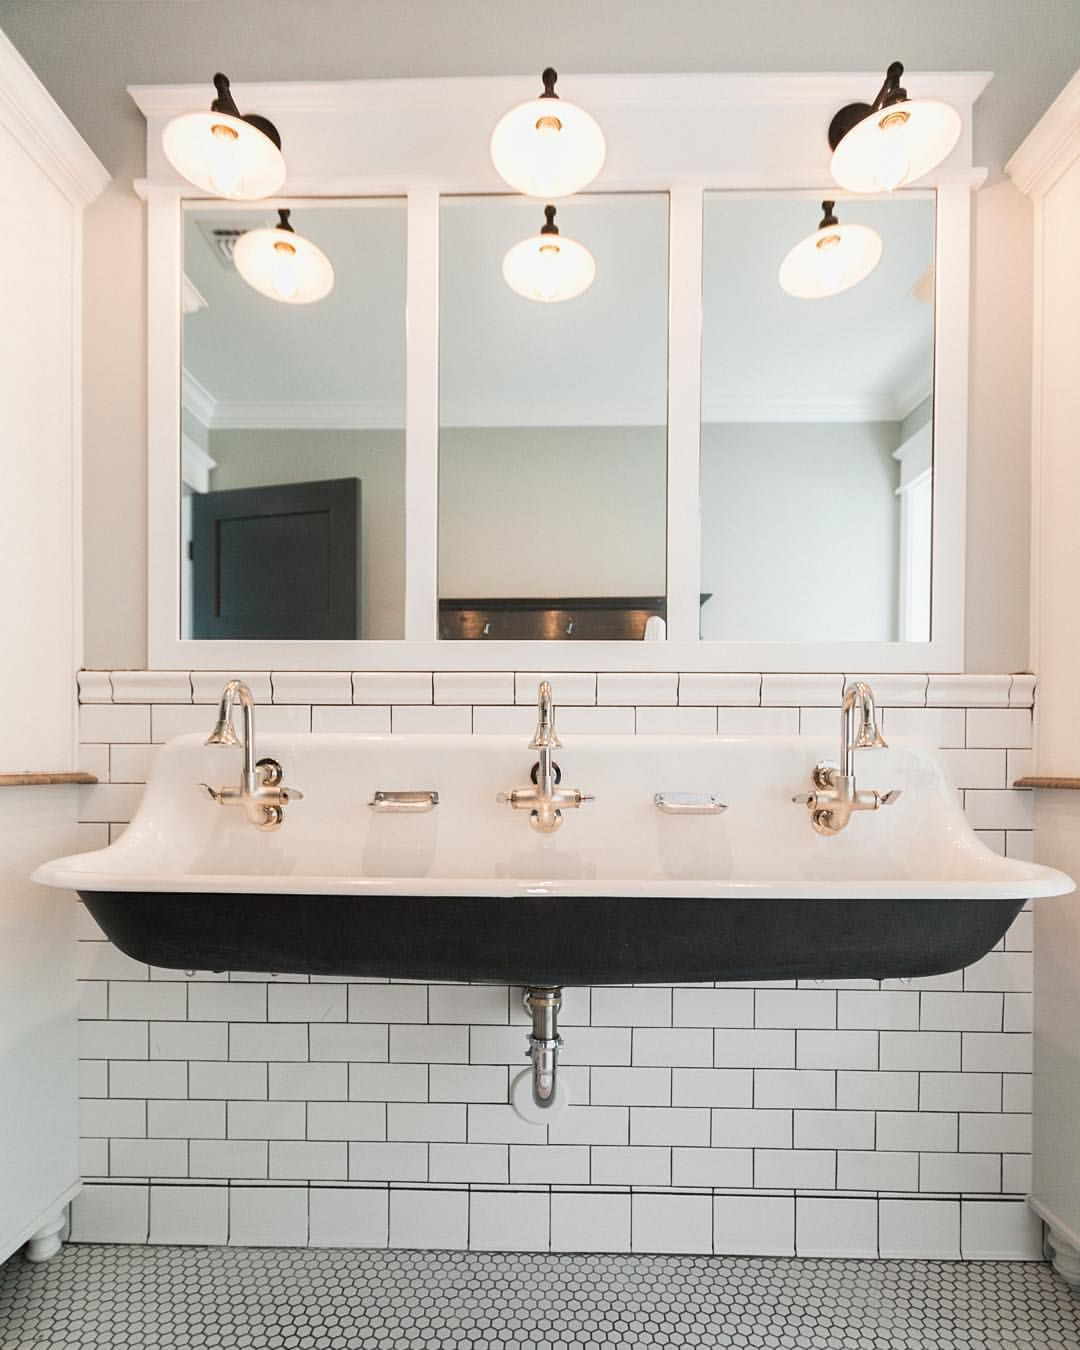 Planning out a new hall bathroom design and thinking about breaking ...